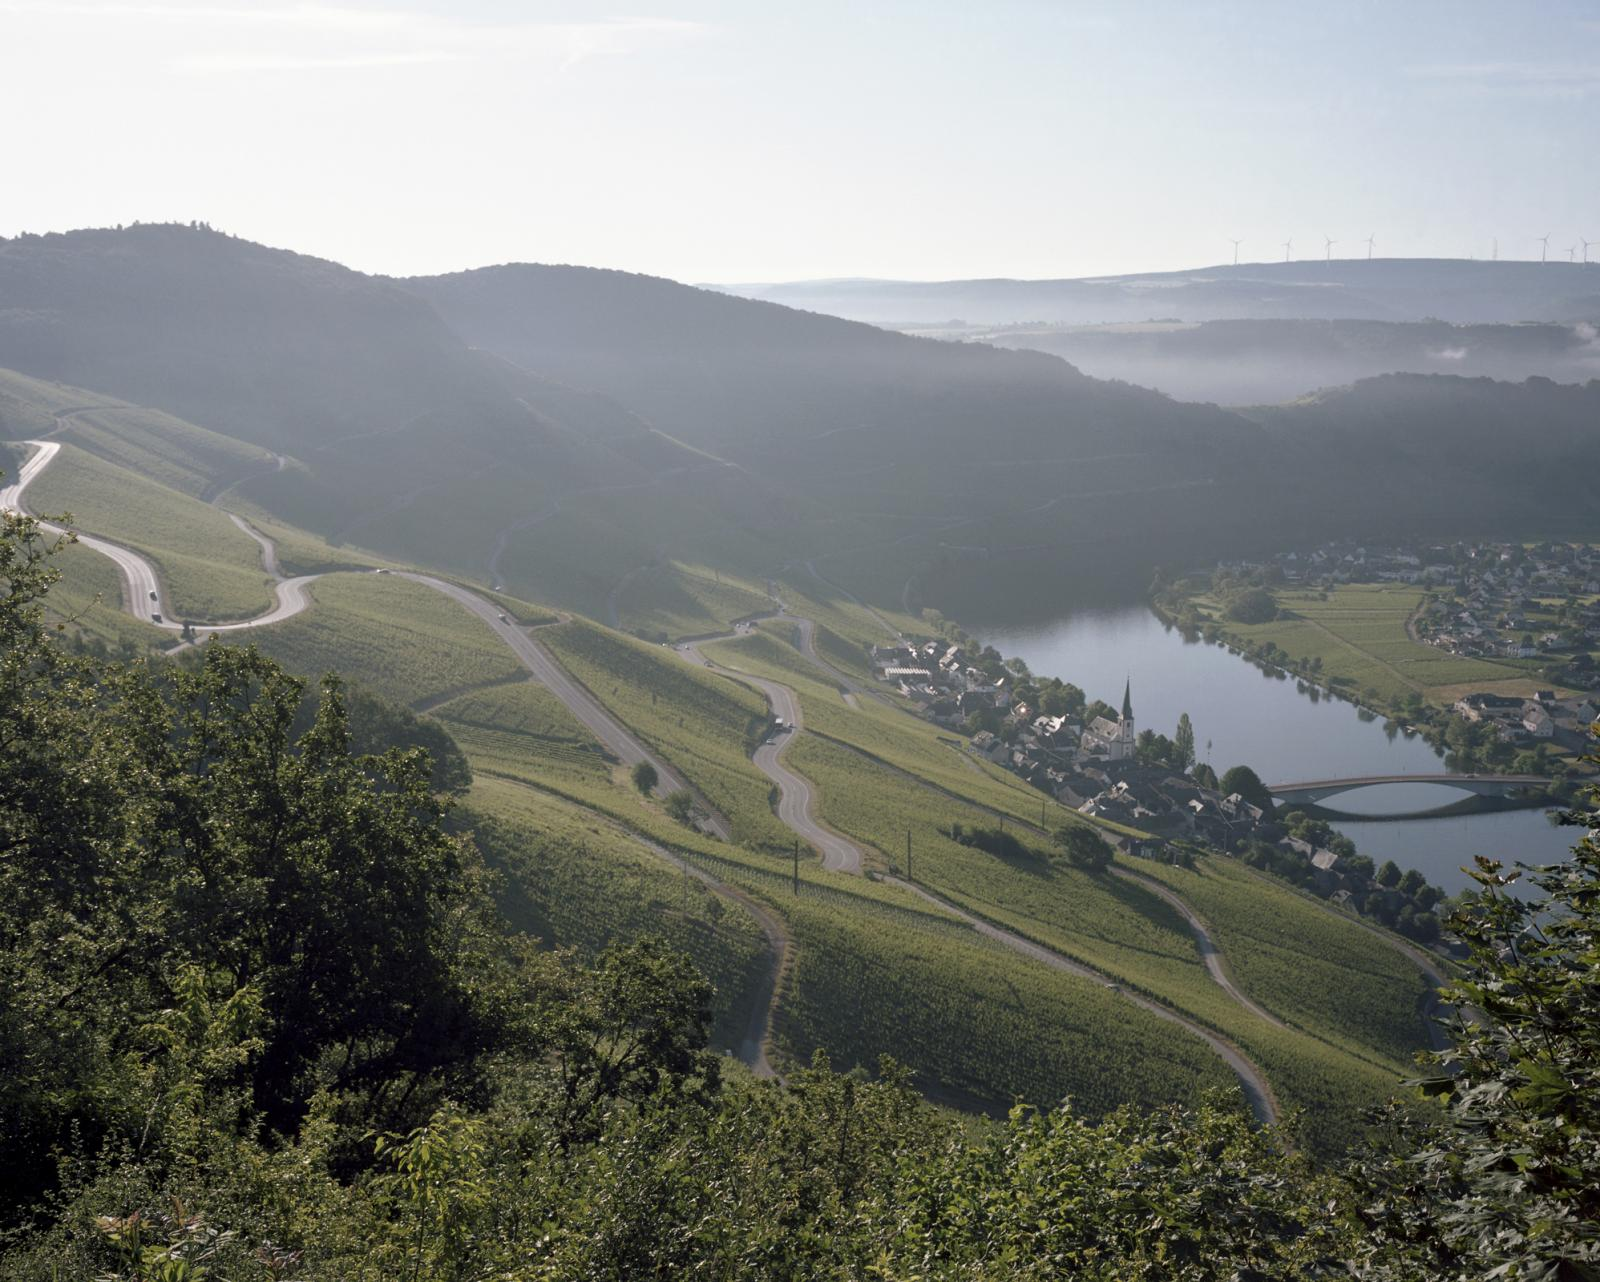 Germany, Piesport. The municipality lies surrounded by vineyards, meadows and woods in the Moselle valley between Bernkastel-Kues and Trier. It is the biggest winegrowing centre in the Mosel wine region.